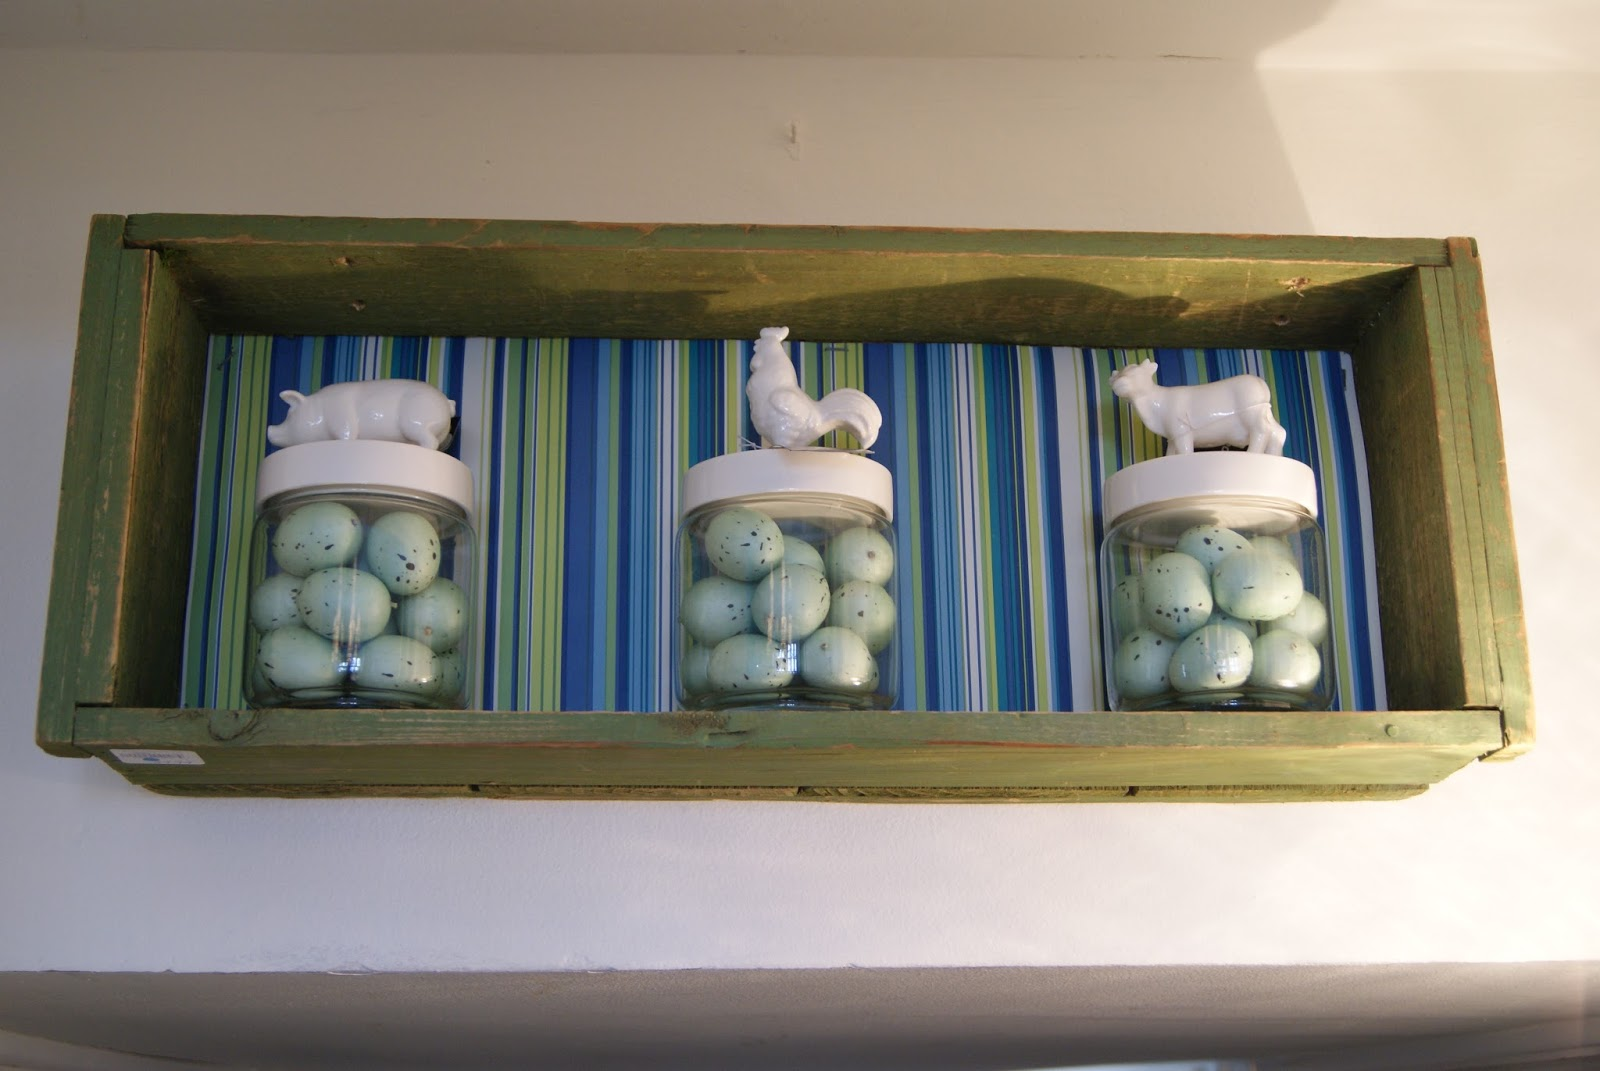 Spring 14 Ideas House by nest full of eggs